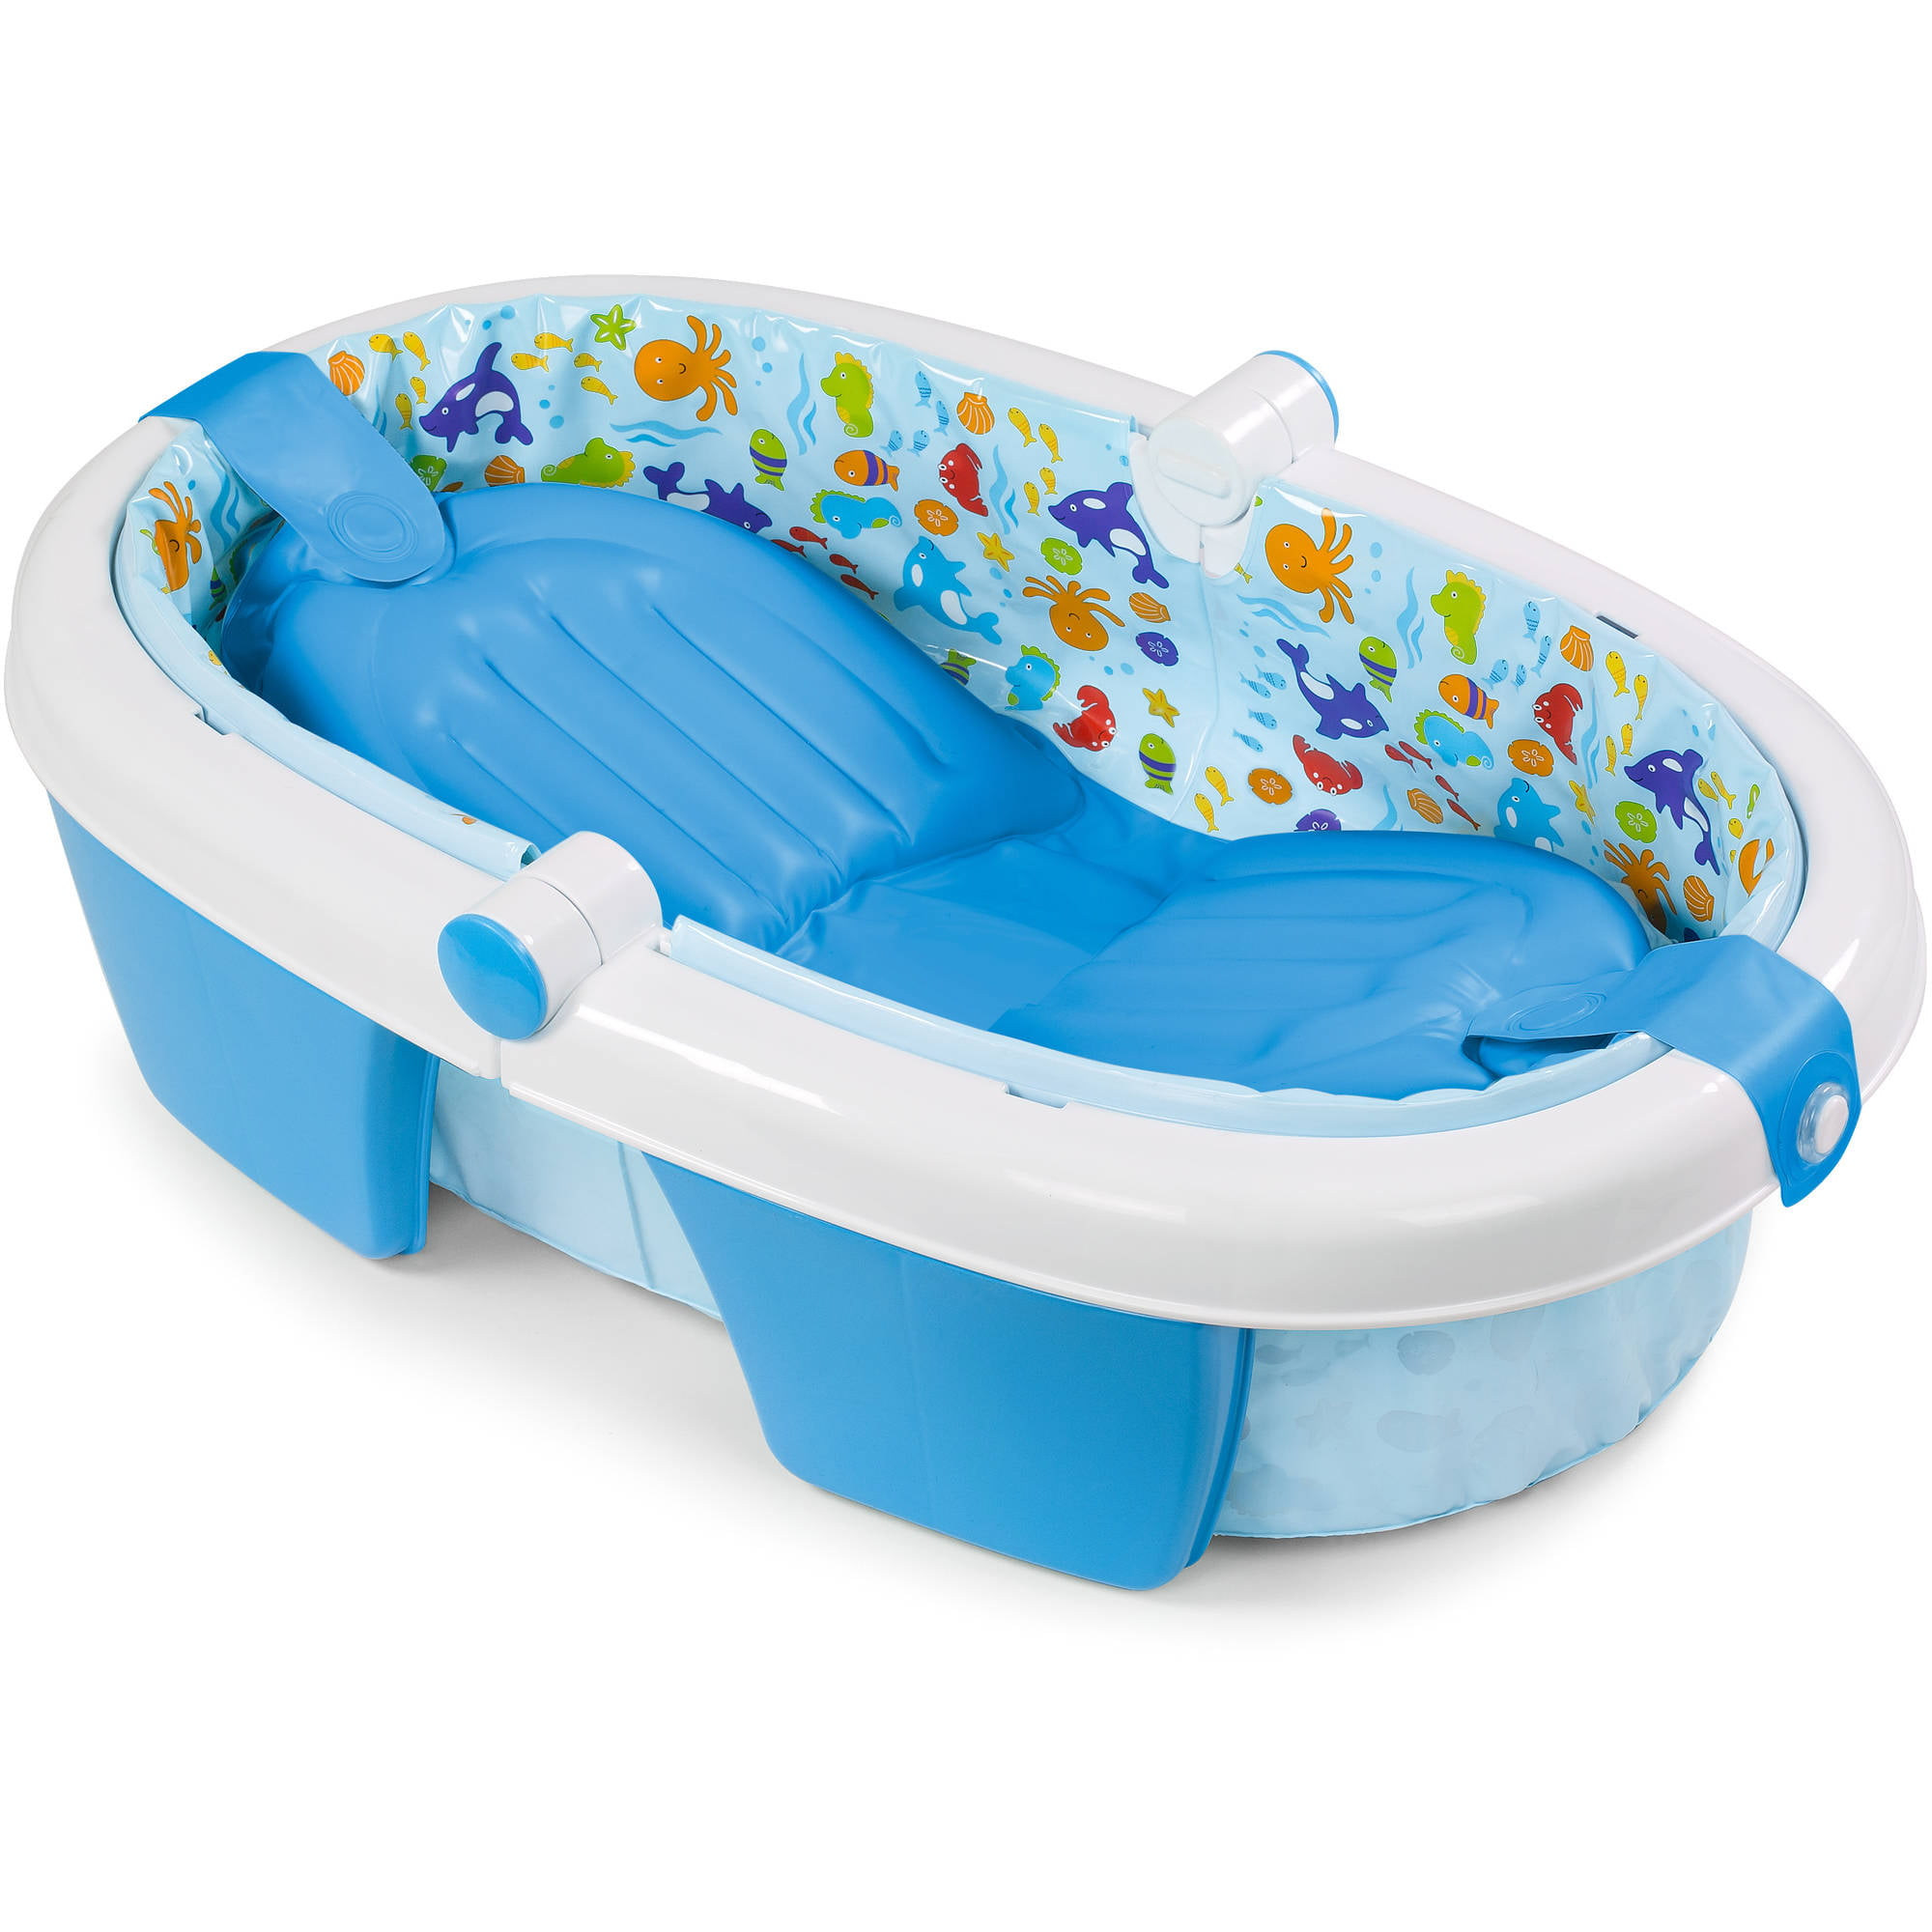 Safety 1st Newborn to Toddler Bathtub, White - Walmart.com